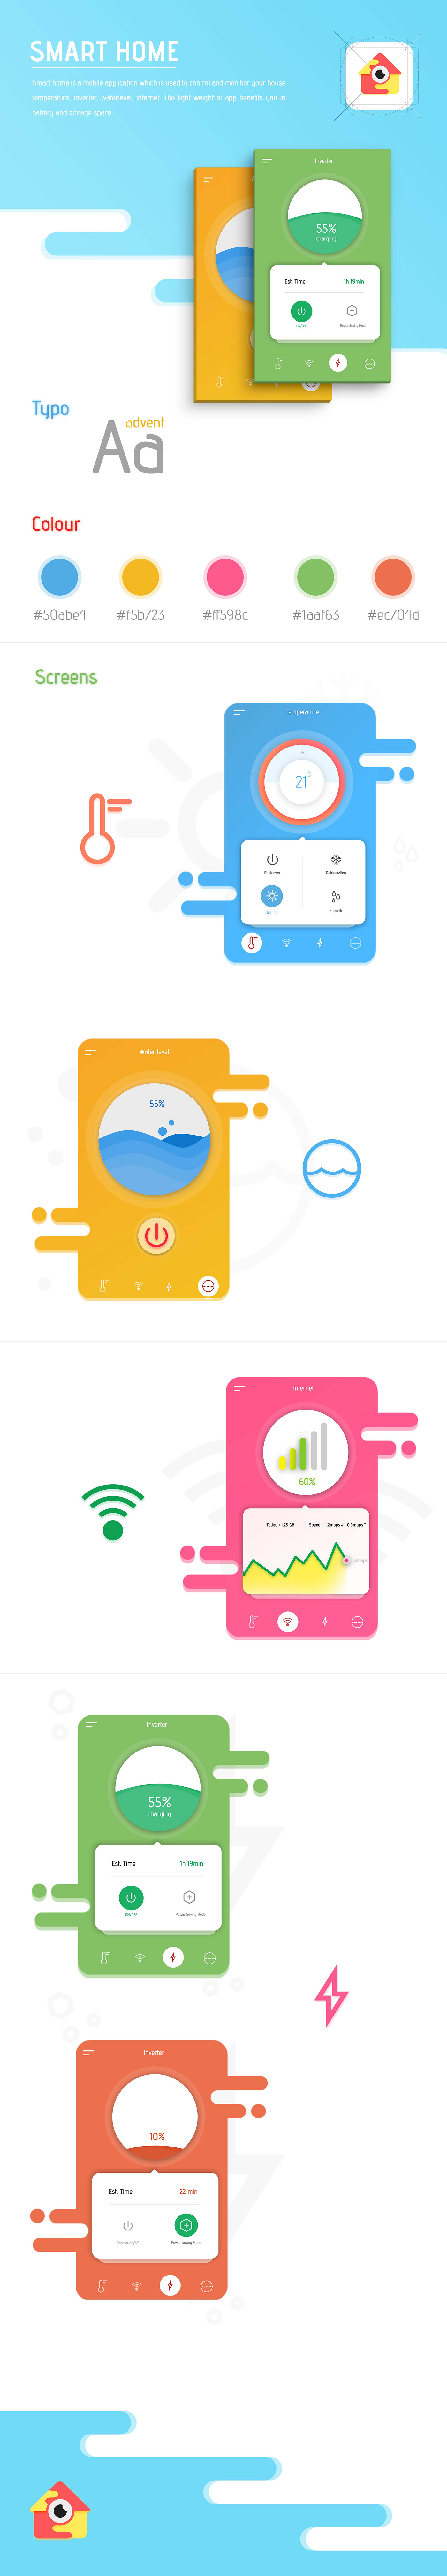 Mobile APP UI home house monitor wifi speed Battery Usage A/C controller